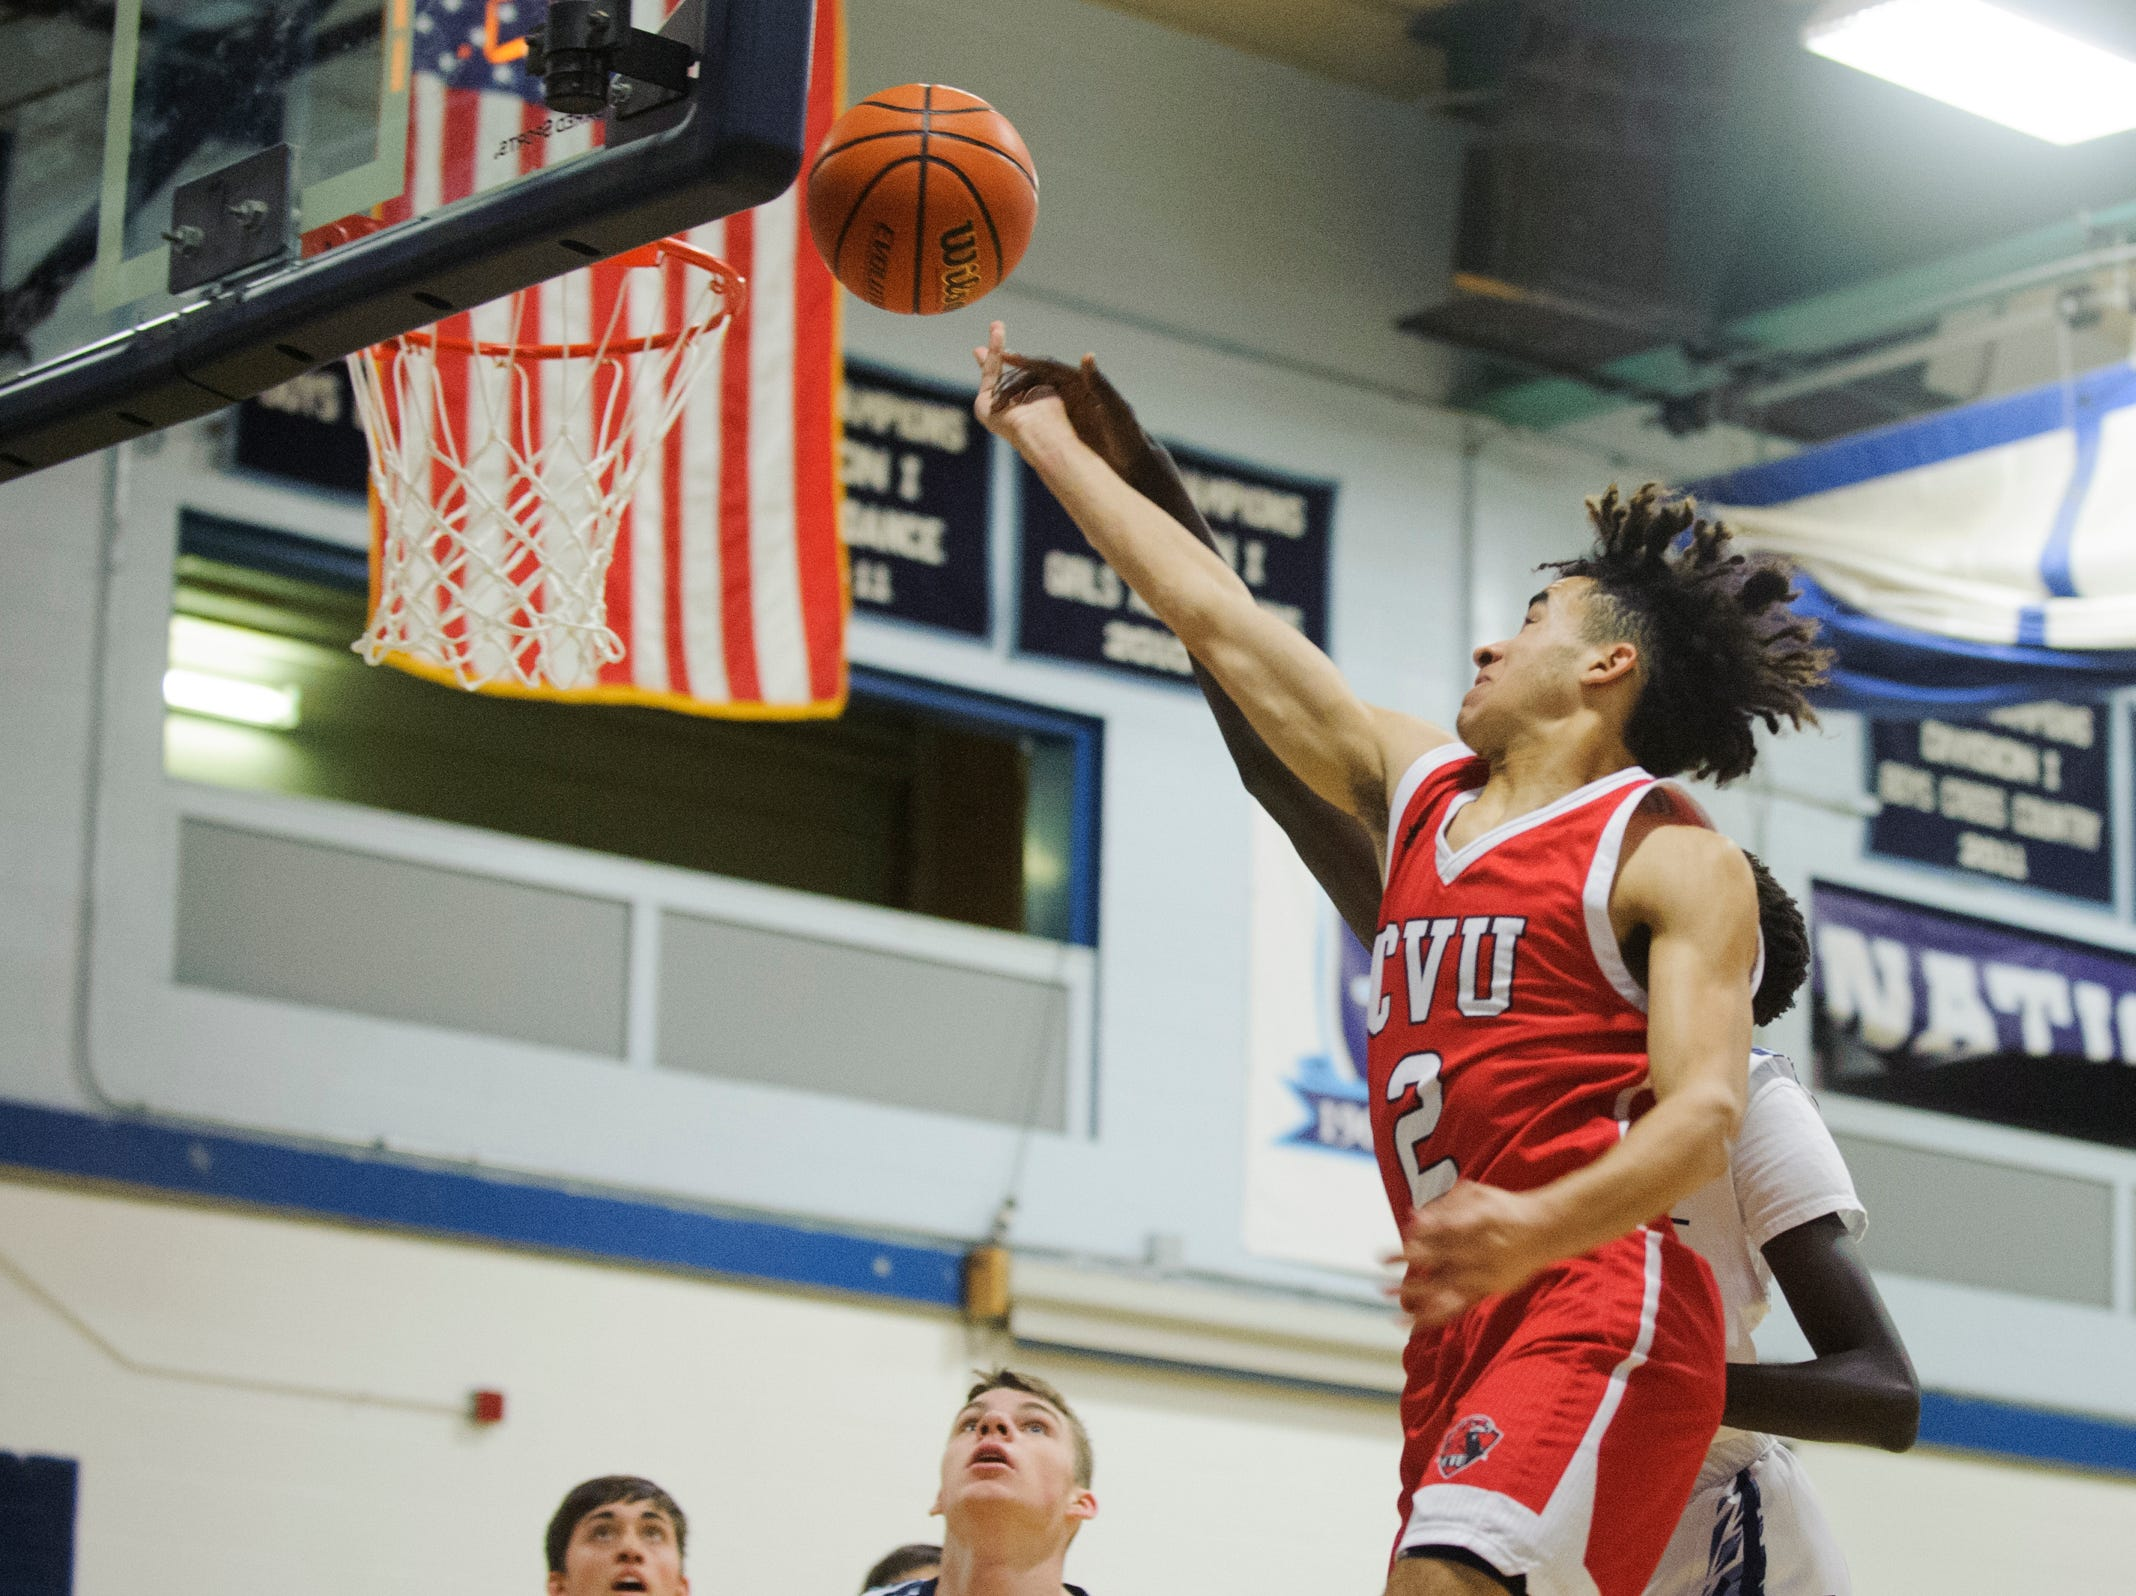 CVU's Jason West (2) leaps for a lay up during the boys basketball game between the Champlain Valley Union Redhawks and the Mount Mansfield Cougars at MMU High School on Tuesday night January 22, 2019 in Jericho.